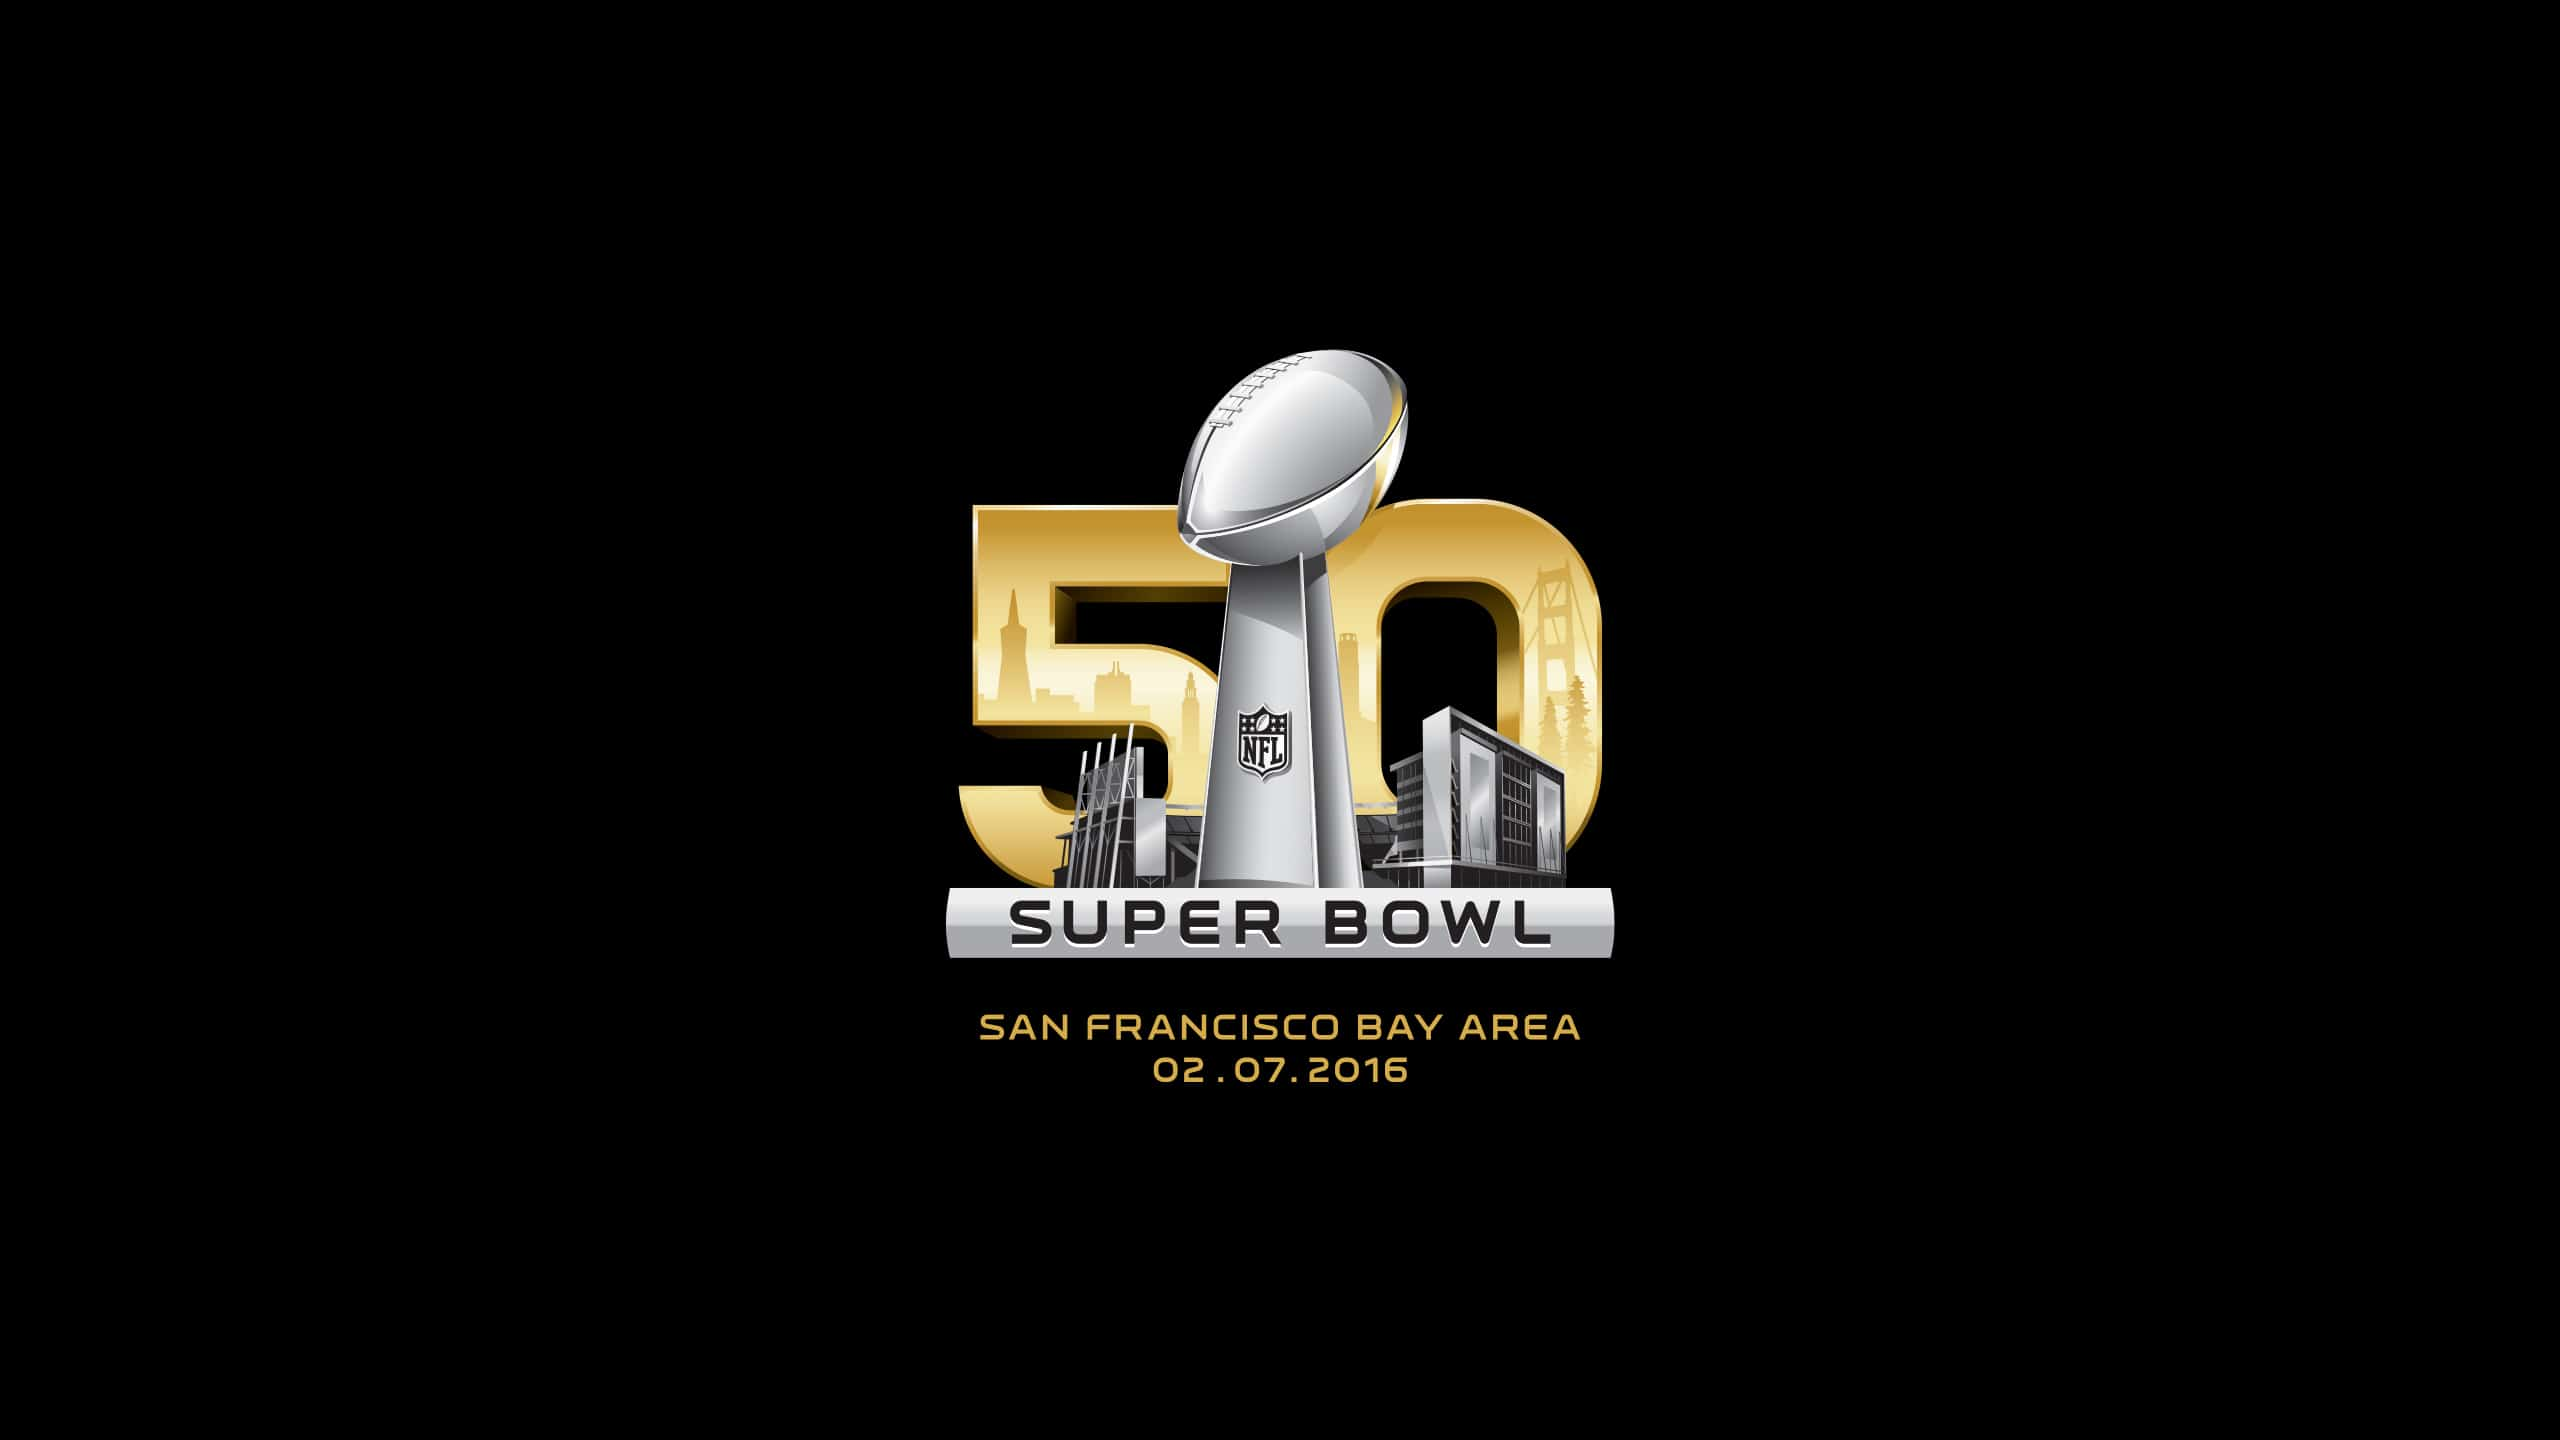 Super Bowl 50 Viewing Party